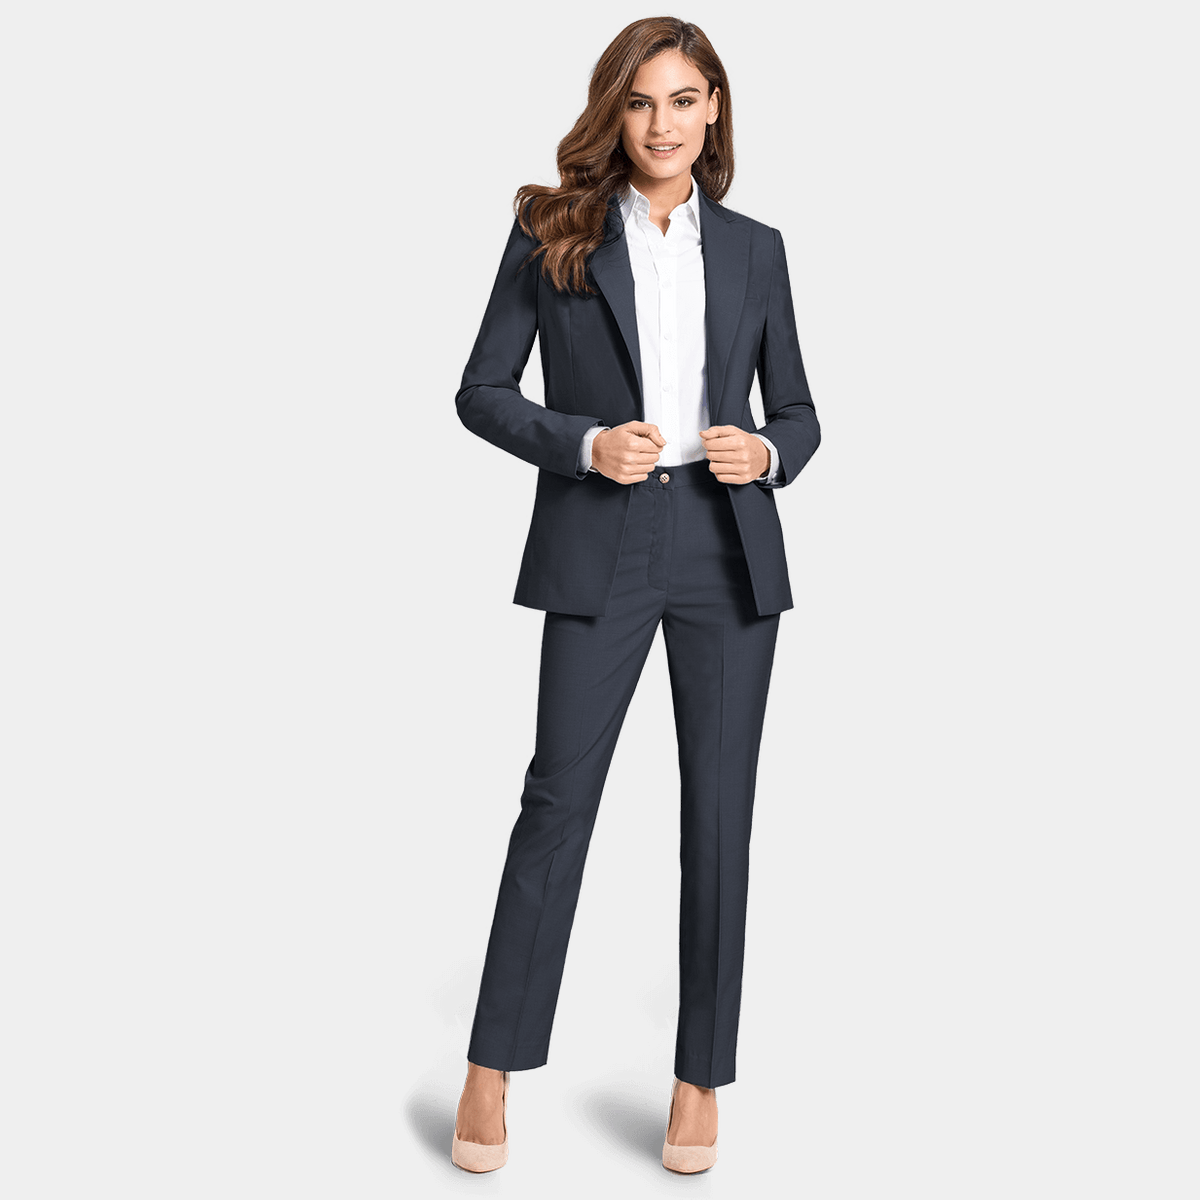 39ff3067a825d Pant Suits for Women [Made-to-Measure] - Sumissura